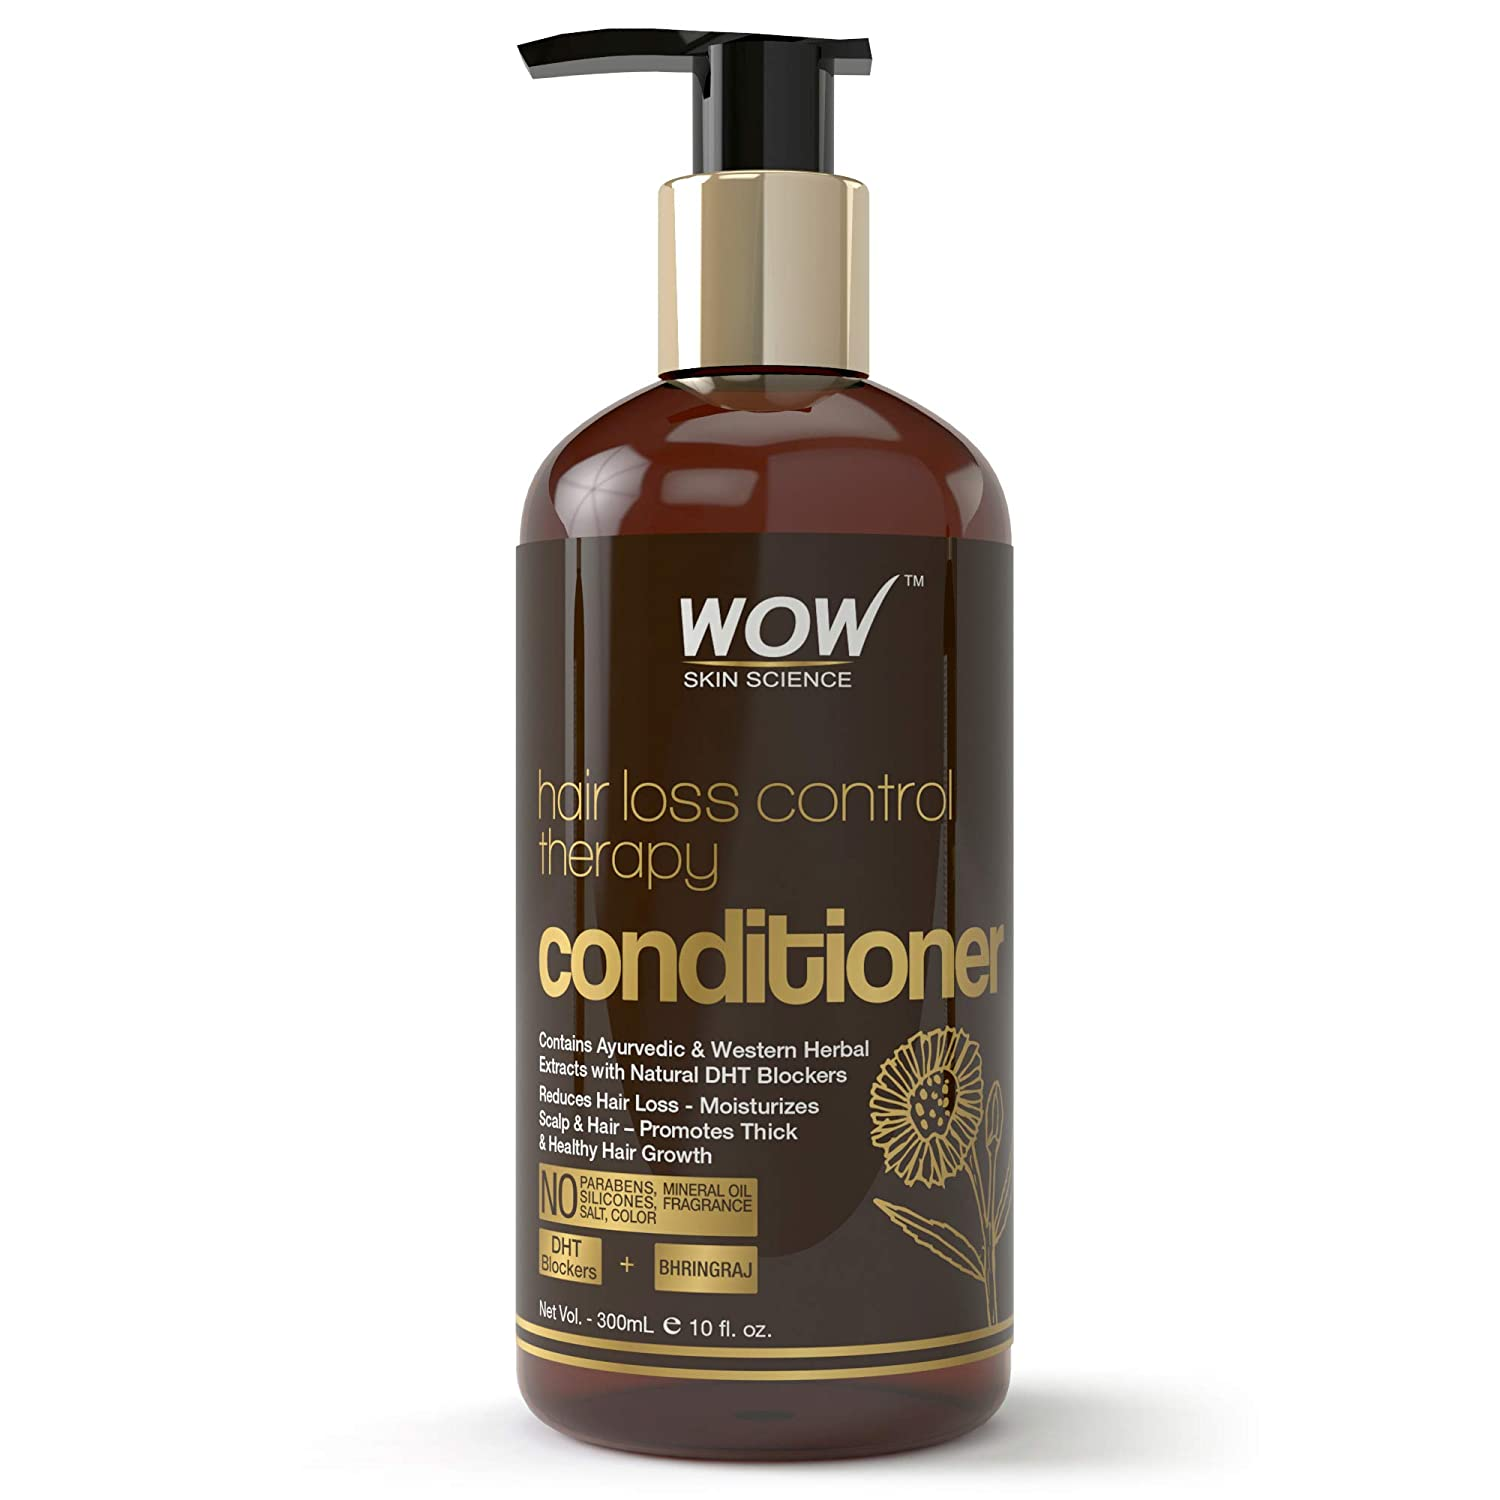 WOW Hair Loss Control Therapy Conditioner 300 ml